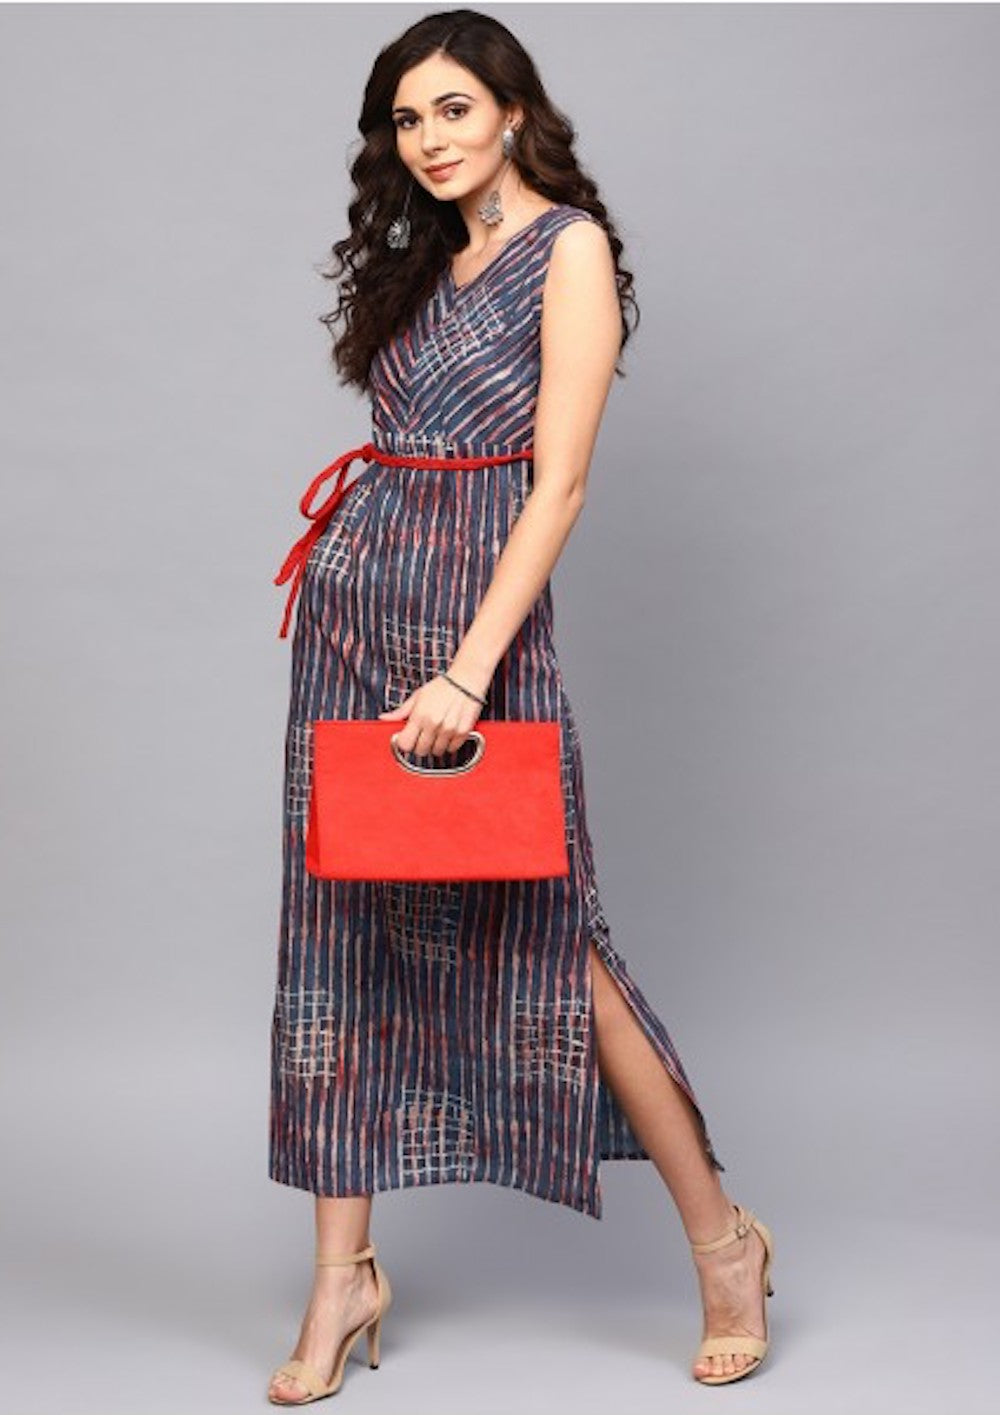 Blue & Red Sleeveless Dress with Belt